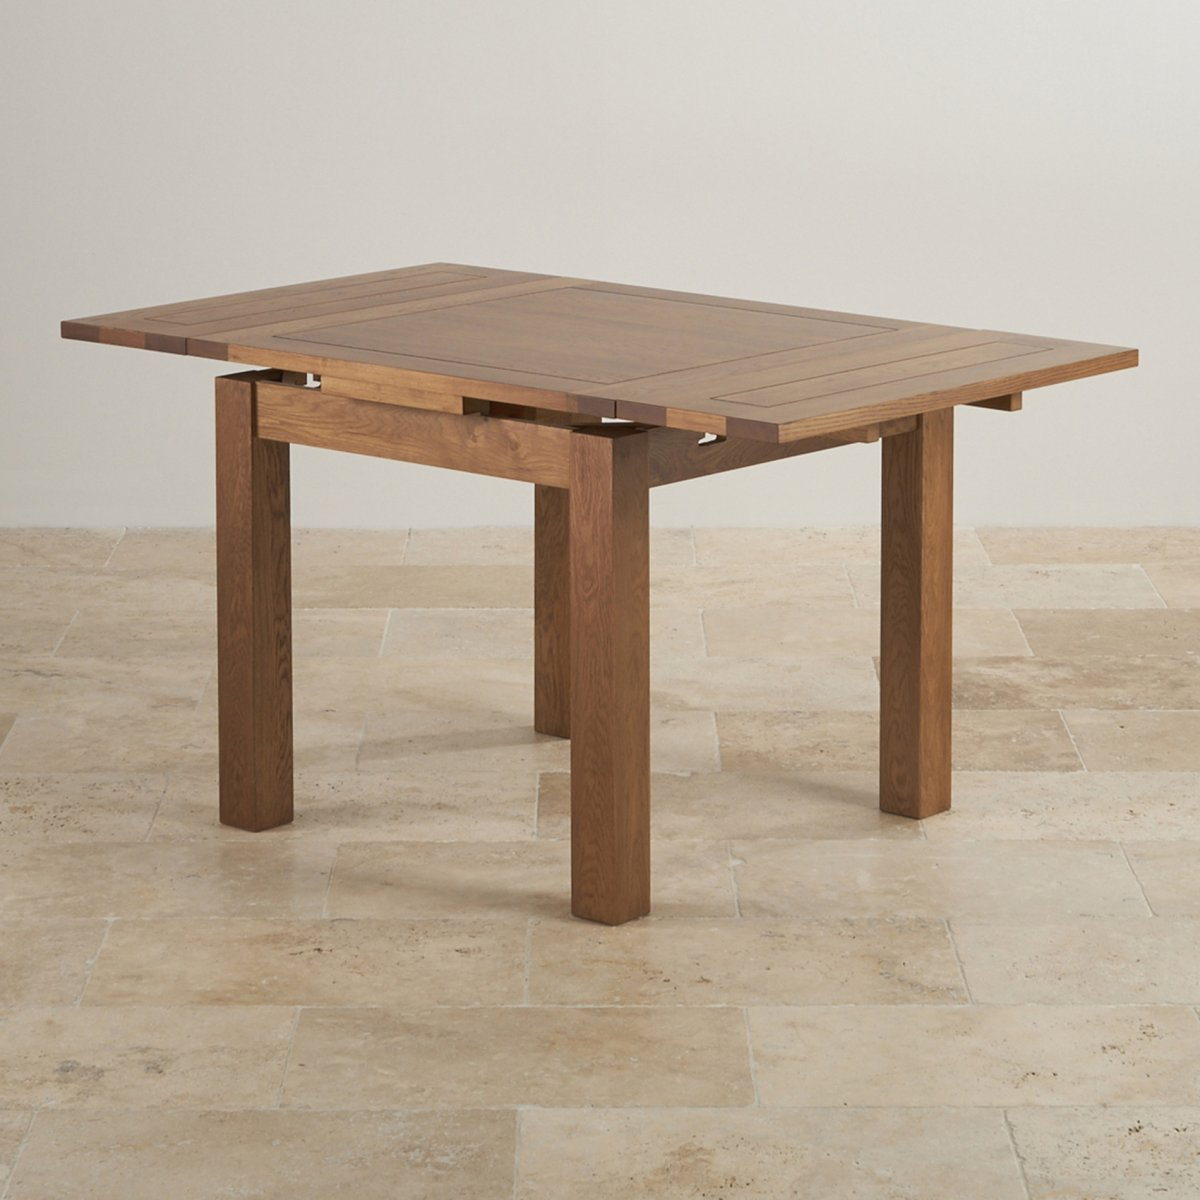 3ft x 3ft Rustic Oak Extending Dining Table Oak  : 3ft x 3ft rustic solid oak extending dining table seats up to 6 people extended 56fbb9eb9a8bf62dab409398f4aacb7264d83488ebfe6 from www.oakfurnitureland.co.uk size 1200 x 1200 jpeg 135kB